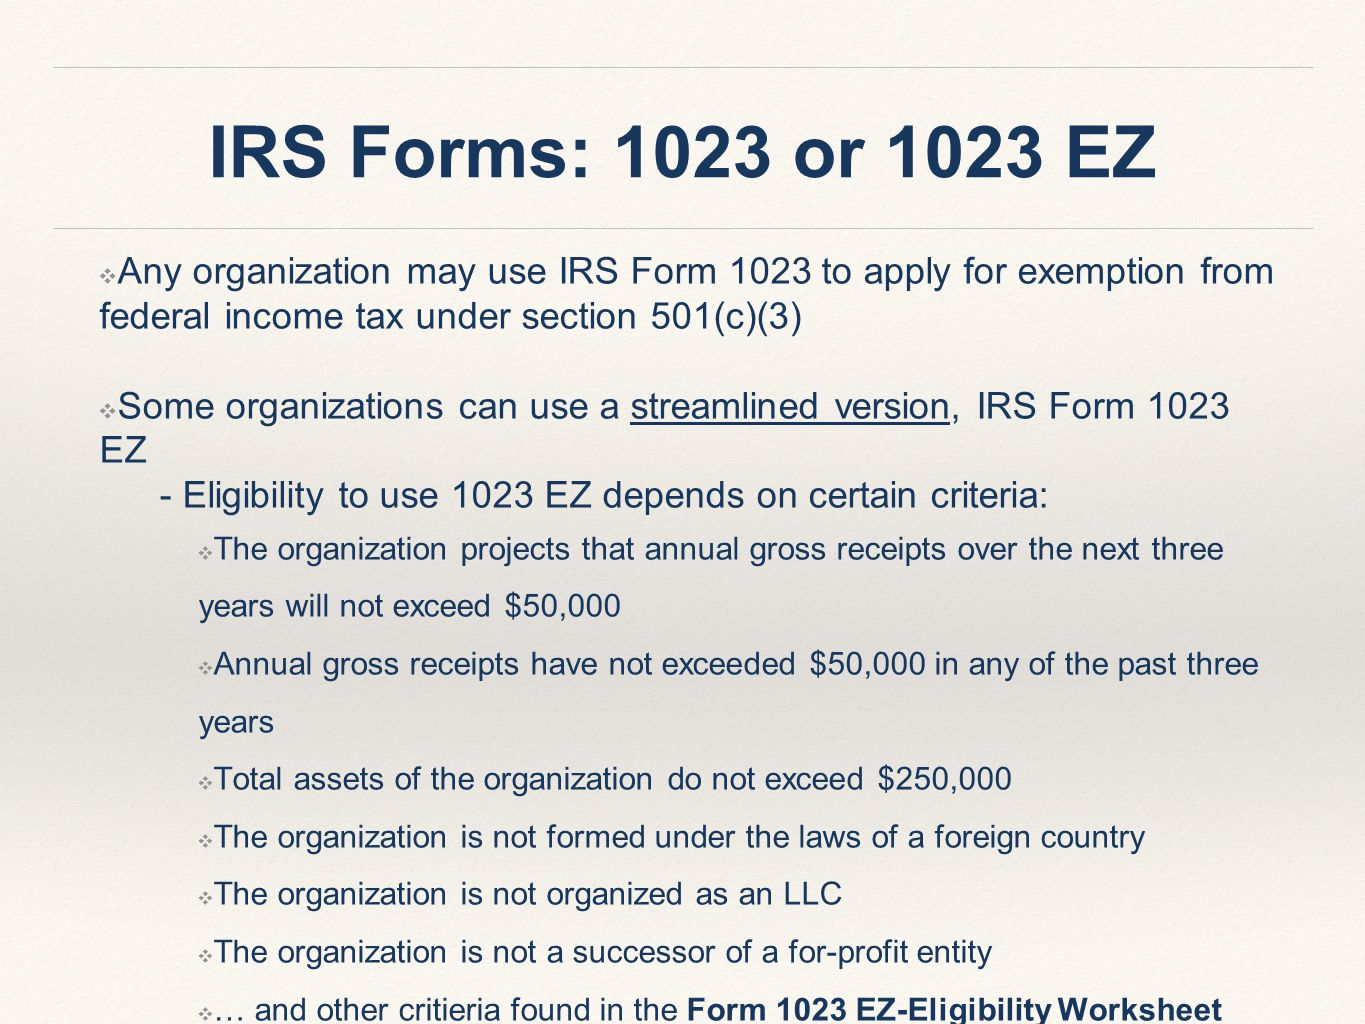 IRS Forms: 1023 or 1023 EZ ❖ Any organization may use IRS Form 1023 to apply for exemption from federal income tax under section 501(c)(3) ❖ Some organizations can use a streamlined version, IRS Form 1023 EZ - Eligibility to use 1023 EZ depends on certain criteria: ❖ The organization projects that annual gross receipts over the next three years will not exceed $50,000 ❖ Annual gross receipts have not exceeded $50,000 in any of the past three years ❖ Total assets of the organization do not exceed $250,000 ❖ The organization is not formed under the laws of a foreign country ❖ The organization is not organized as an LLC ❖ The organization is not a successor of a for-profit entity ❖ … and other critieria found in the Form 1023 EZ-Eligibility Worksheet